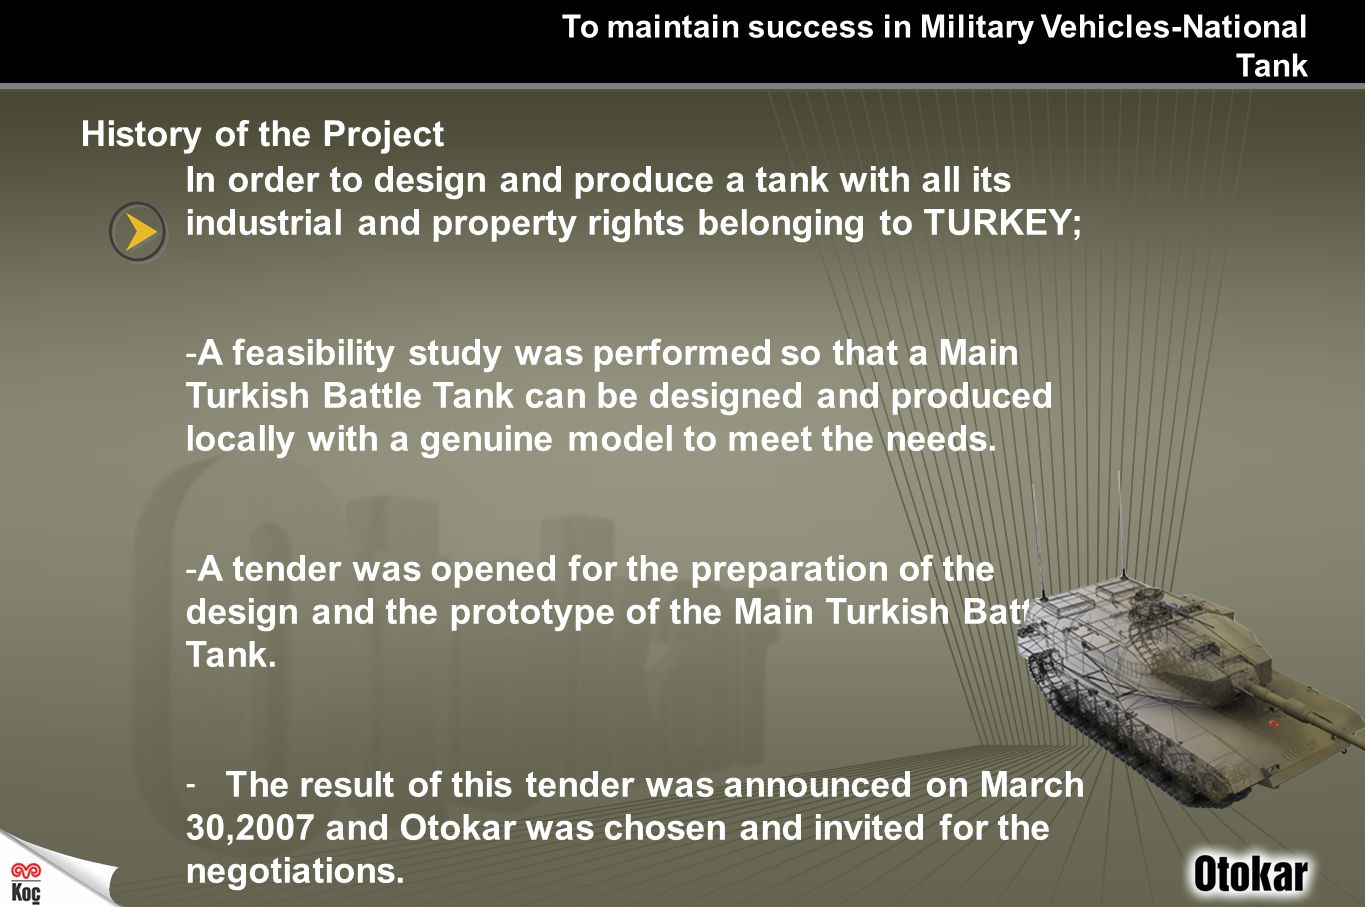 In order to design and produce a tank with all its industrial and property rights belonging to TURKEY; -A feasibility study was performed so that a Main Turkish Battle Tank can be designed and produced locally with a genuine model to meet the needs.